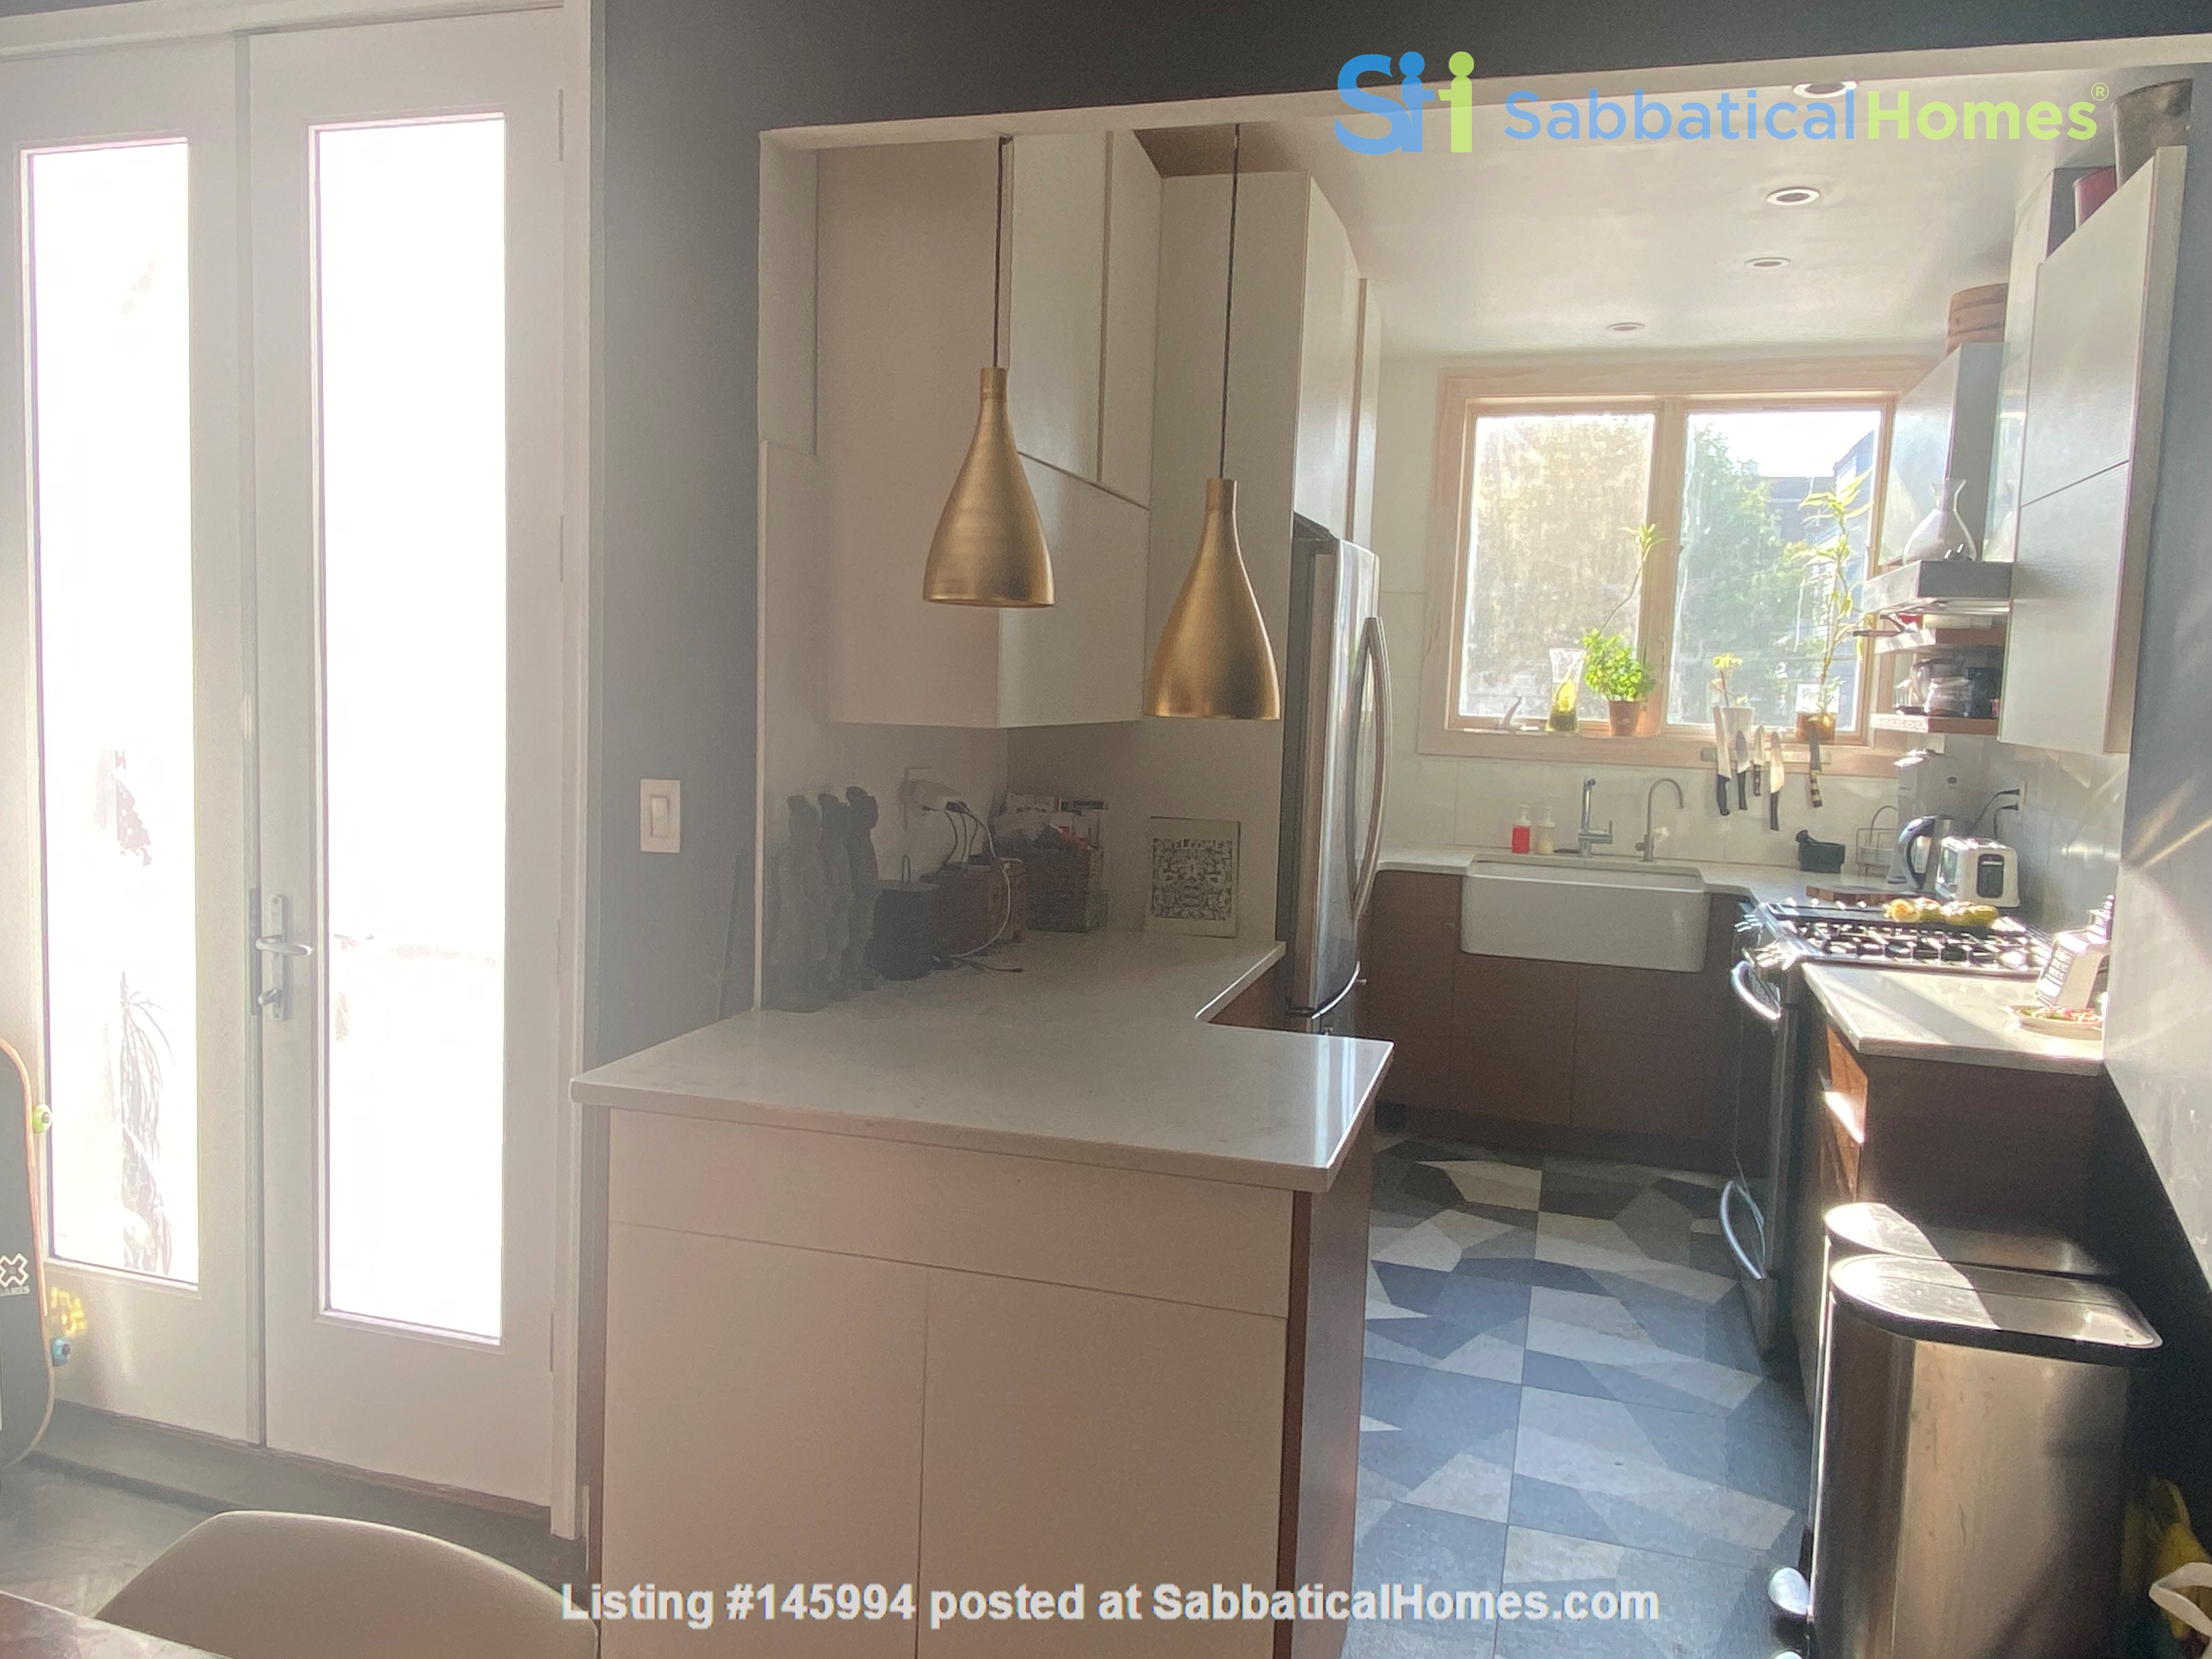 Brooklyn Jewel Box 3br/2bth House, Walking Distance to Park/Sunset Pier! Home Exchange in  3